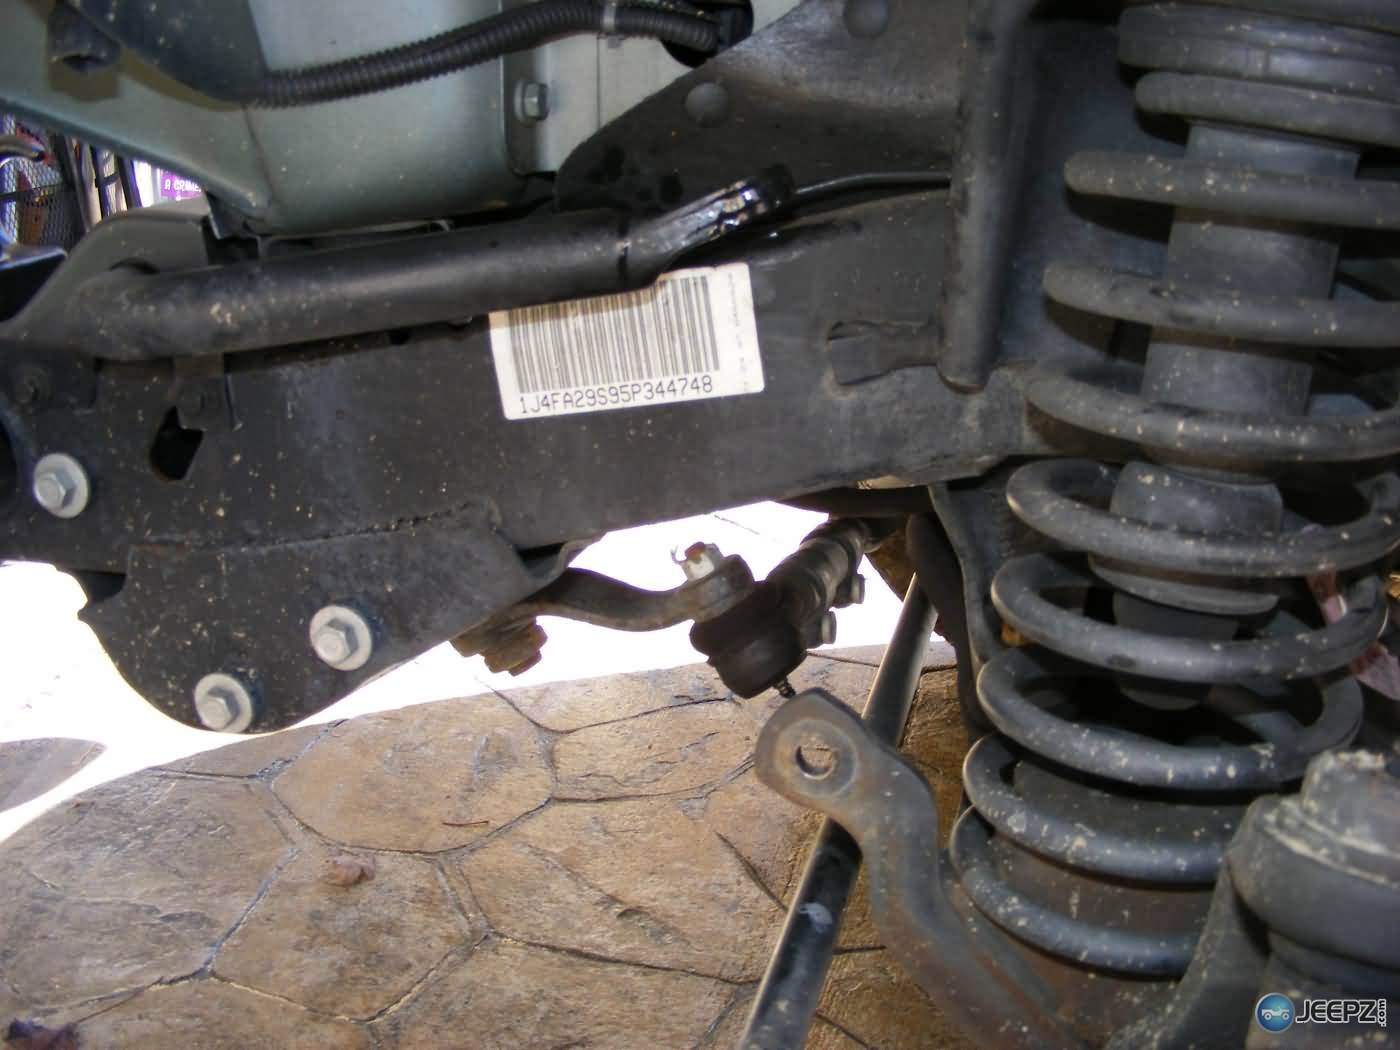 hight resolution of installing sway bar disconnects on your jeep wrangler jeep wrangler distributor diagram installing sway bar disconnects